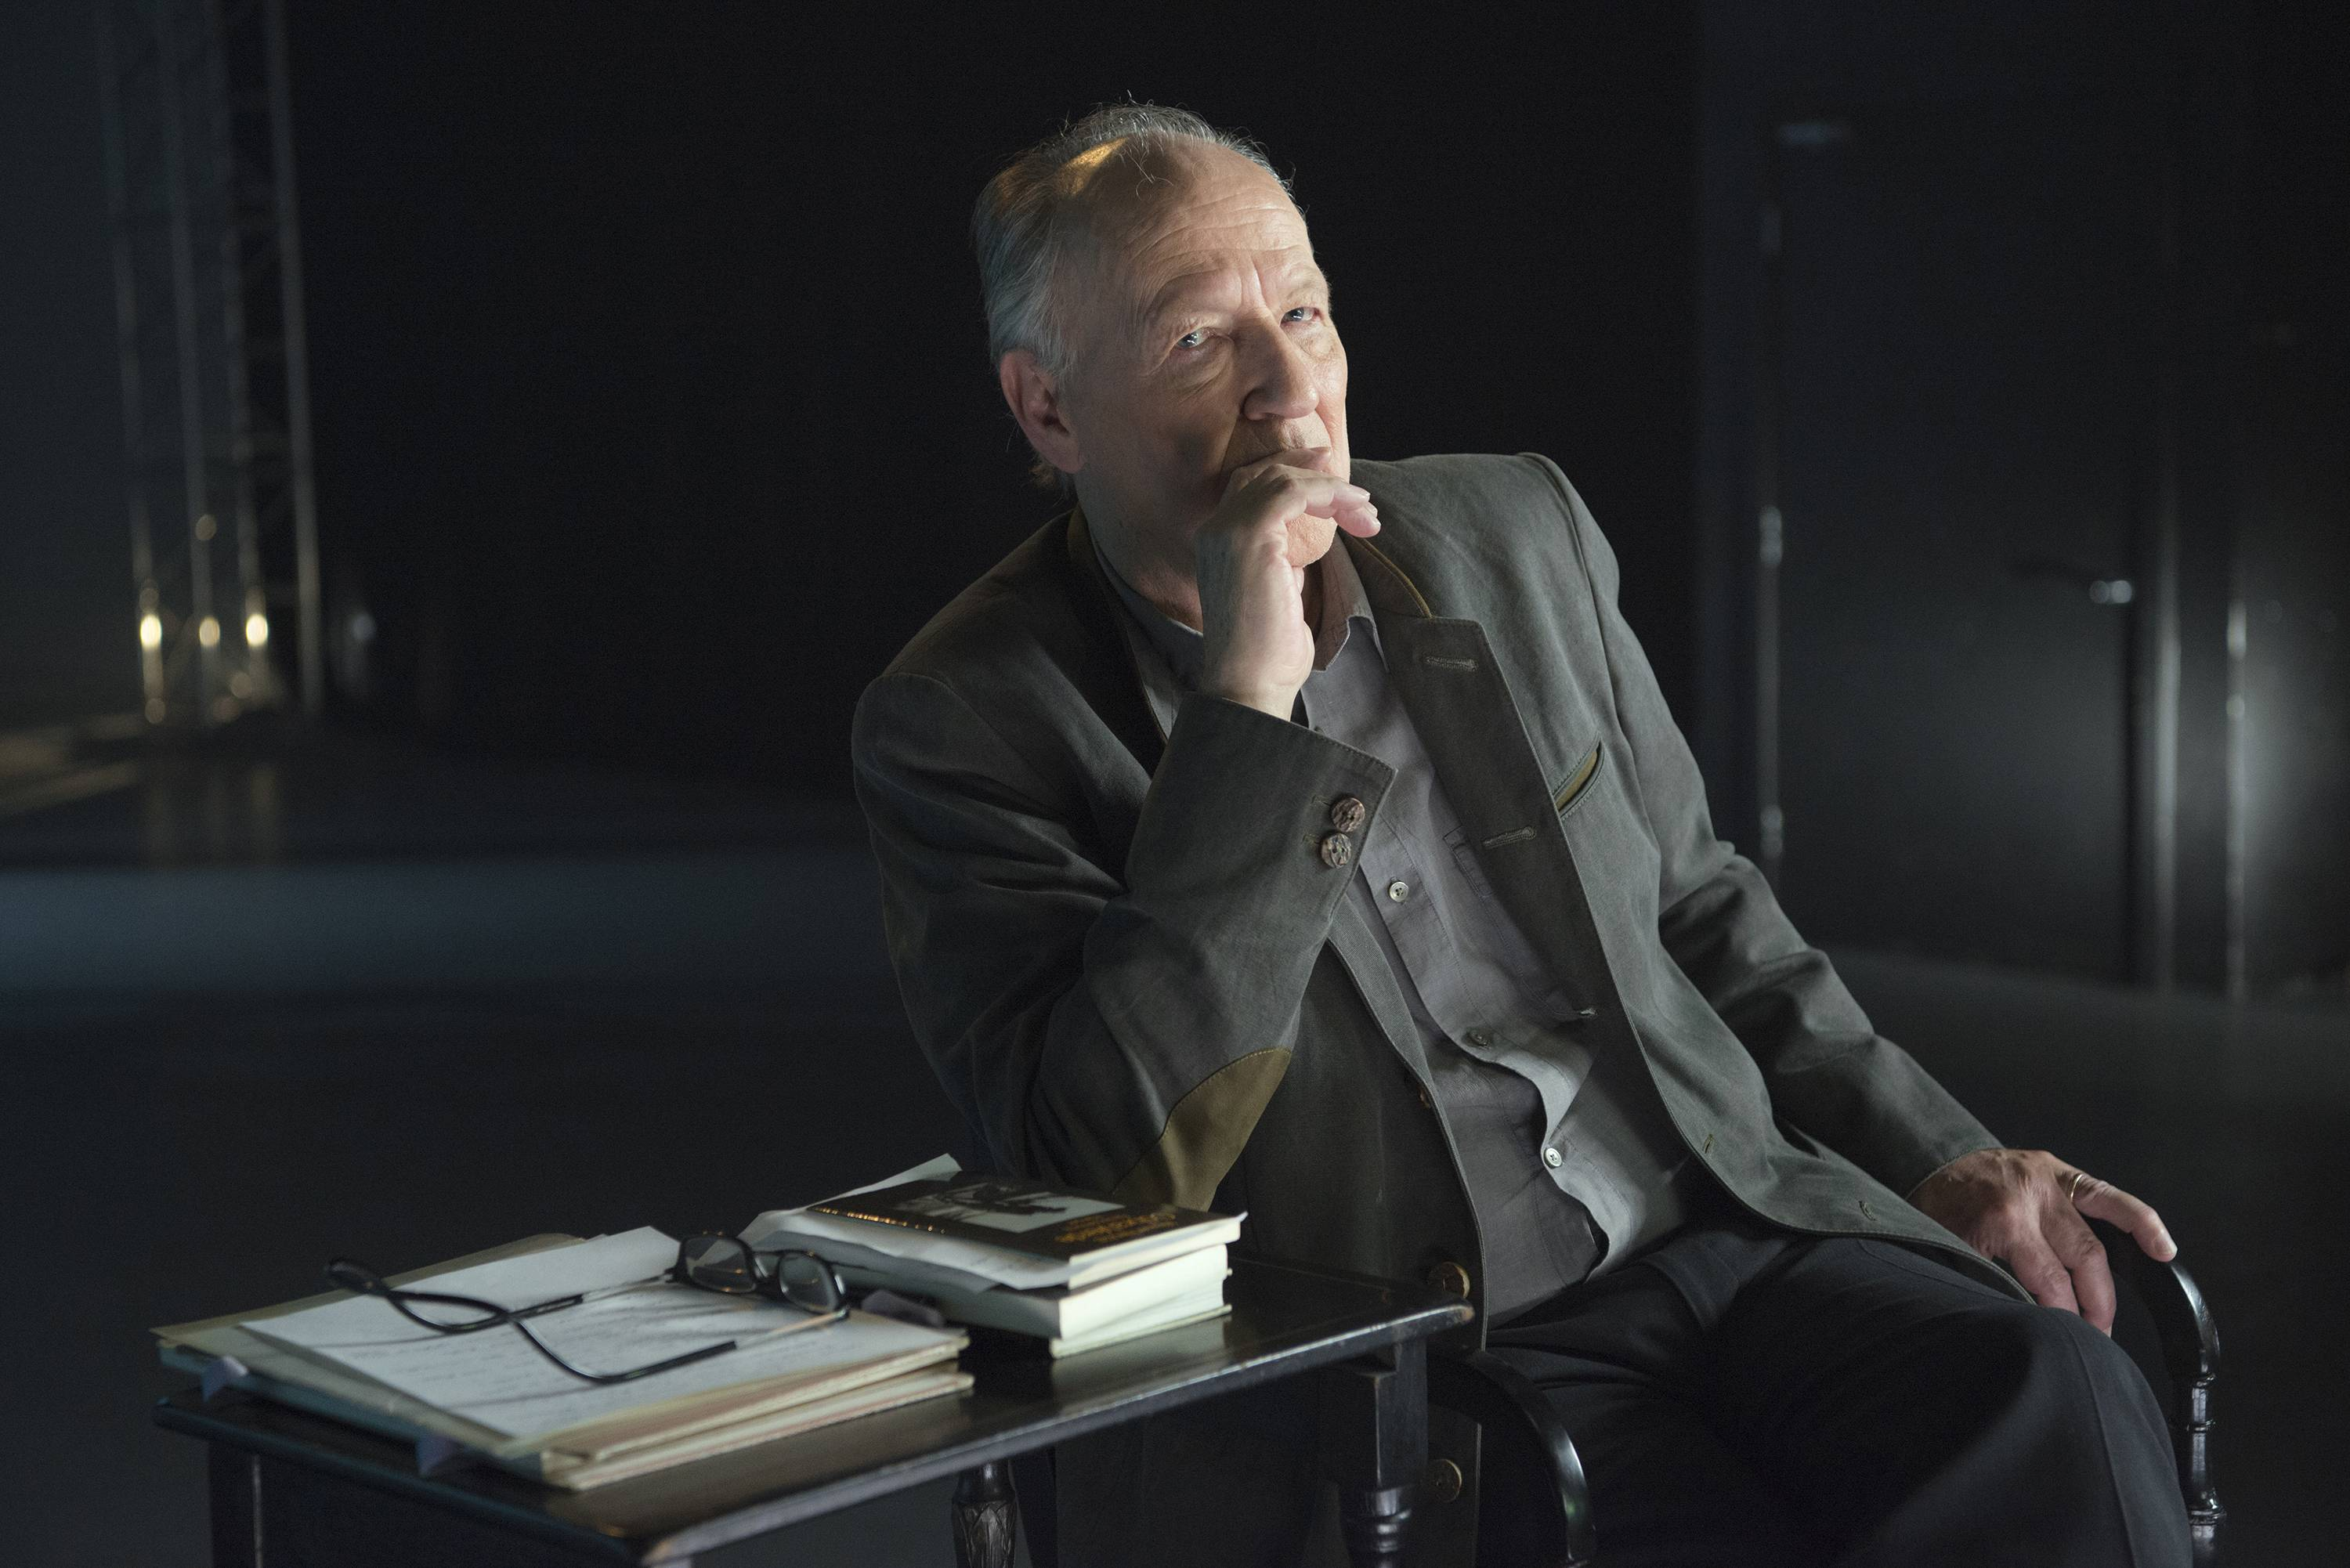 Werner Herzog teaches a Master Class on filmmaking on MasterClass.com.